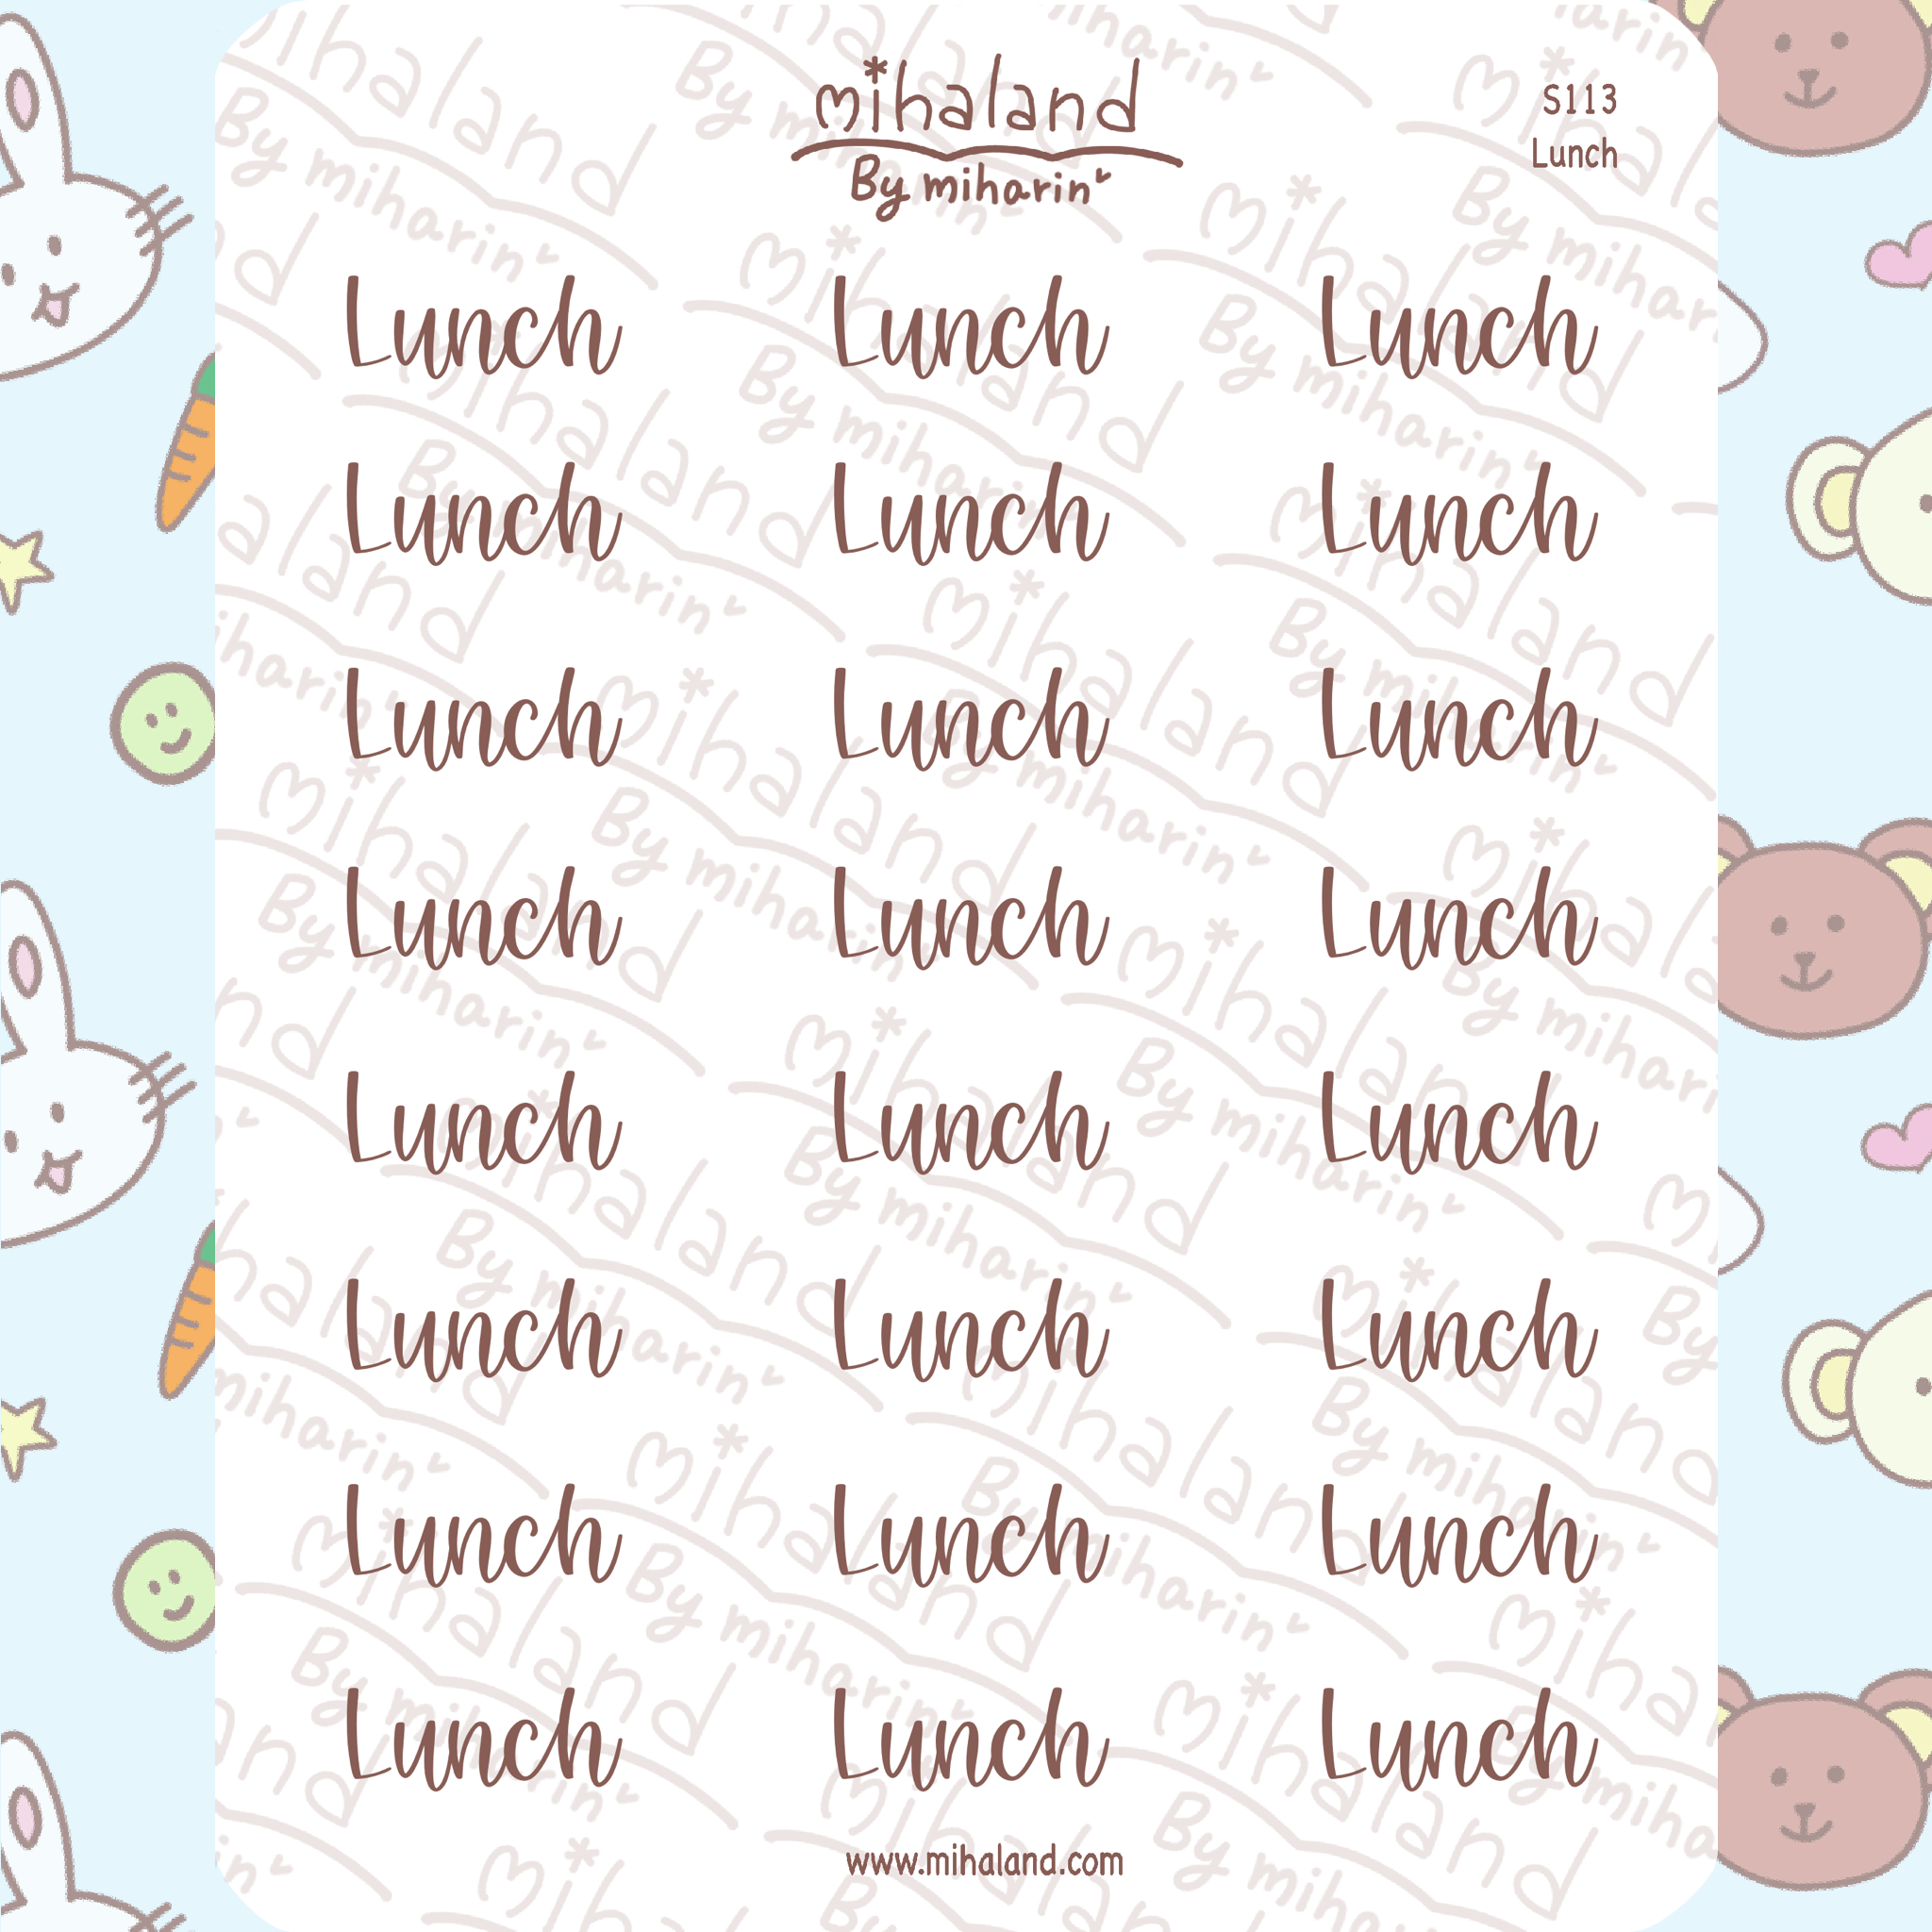 Lunch Script Planner Stickers (S113)